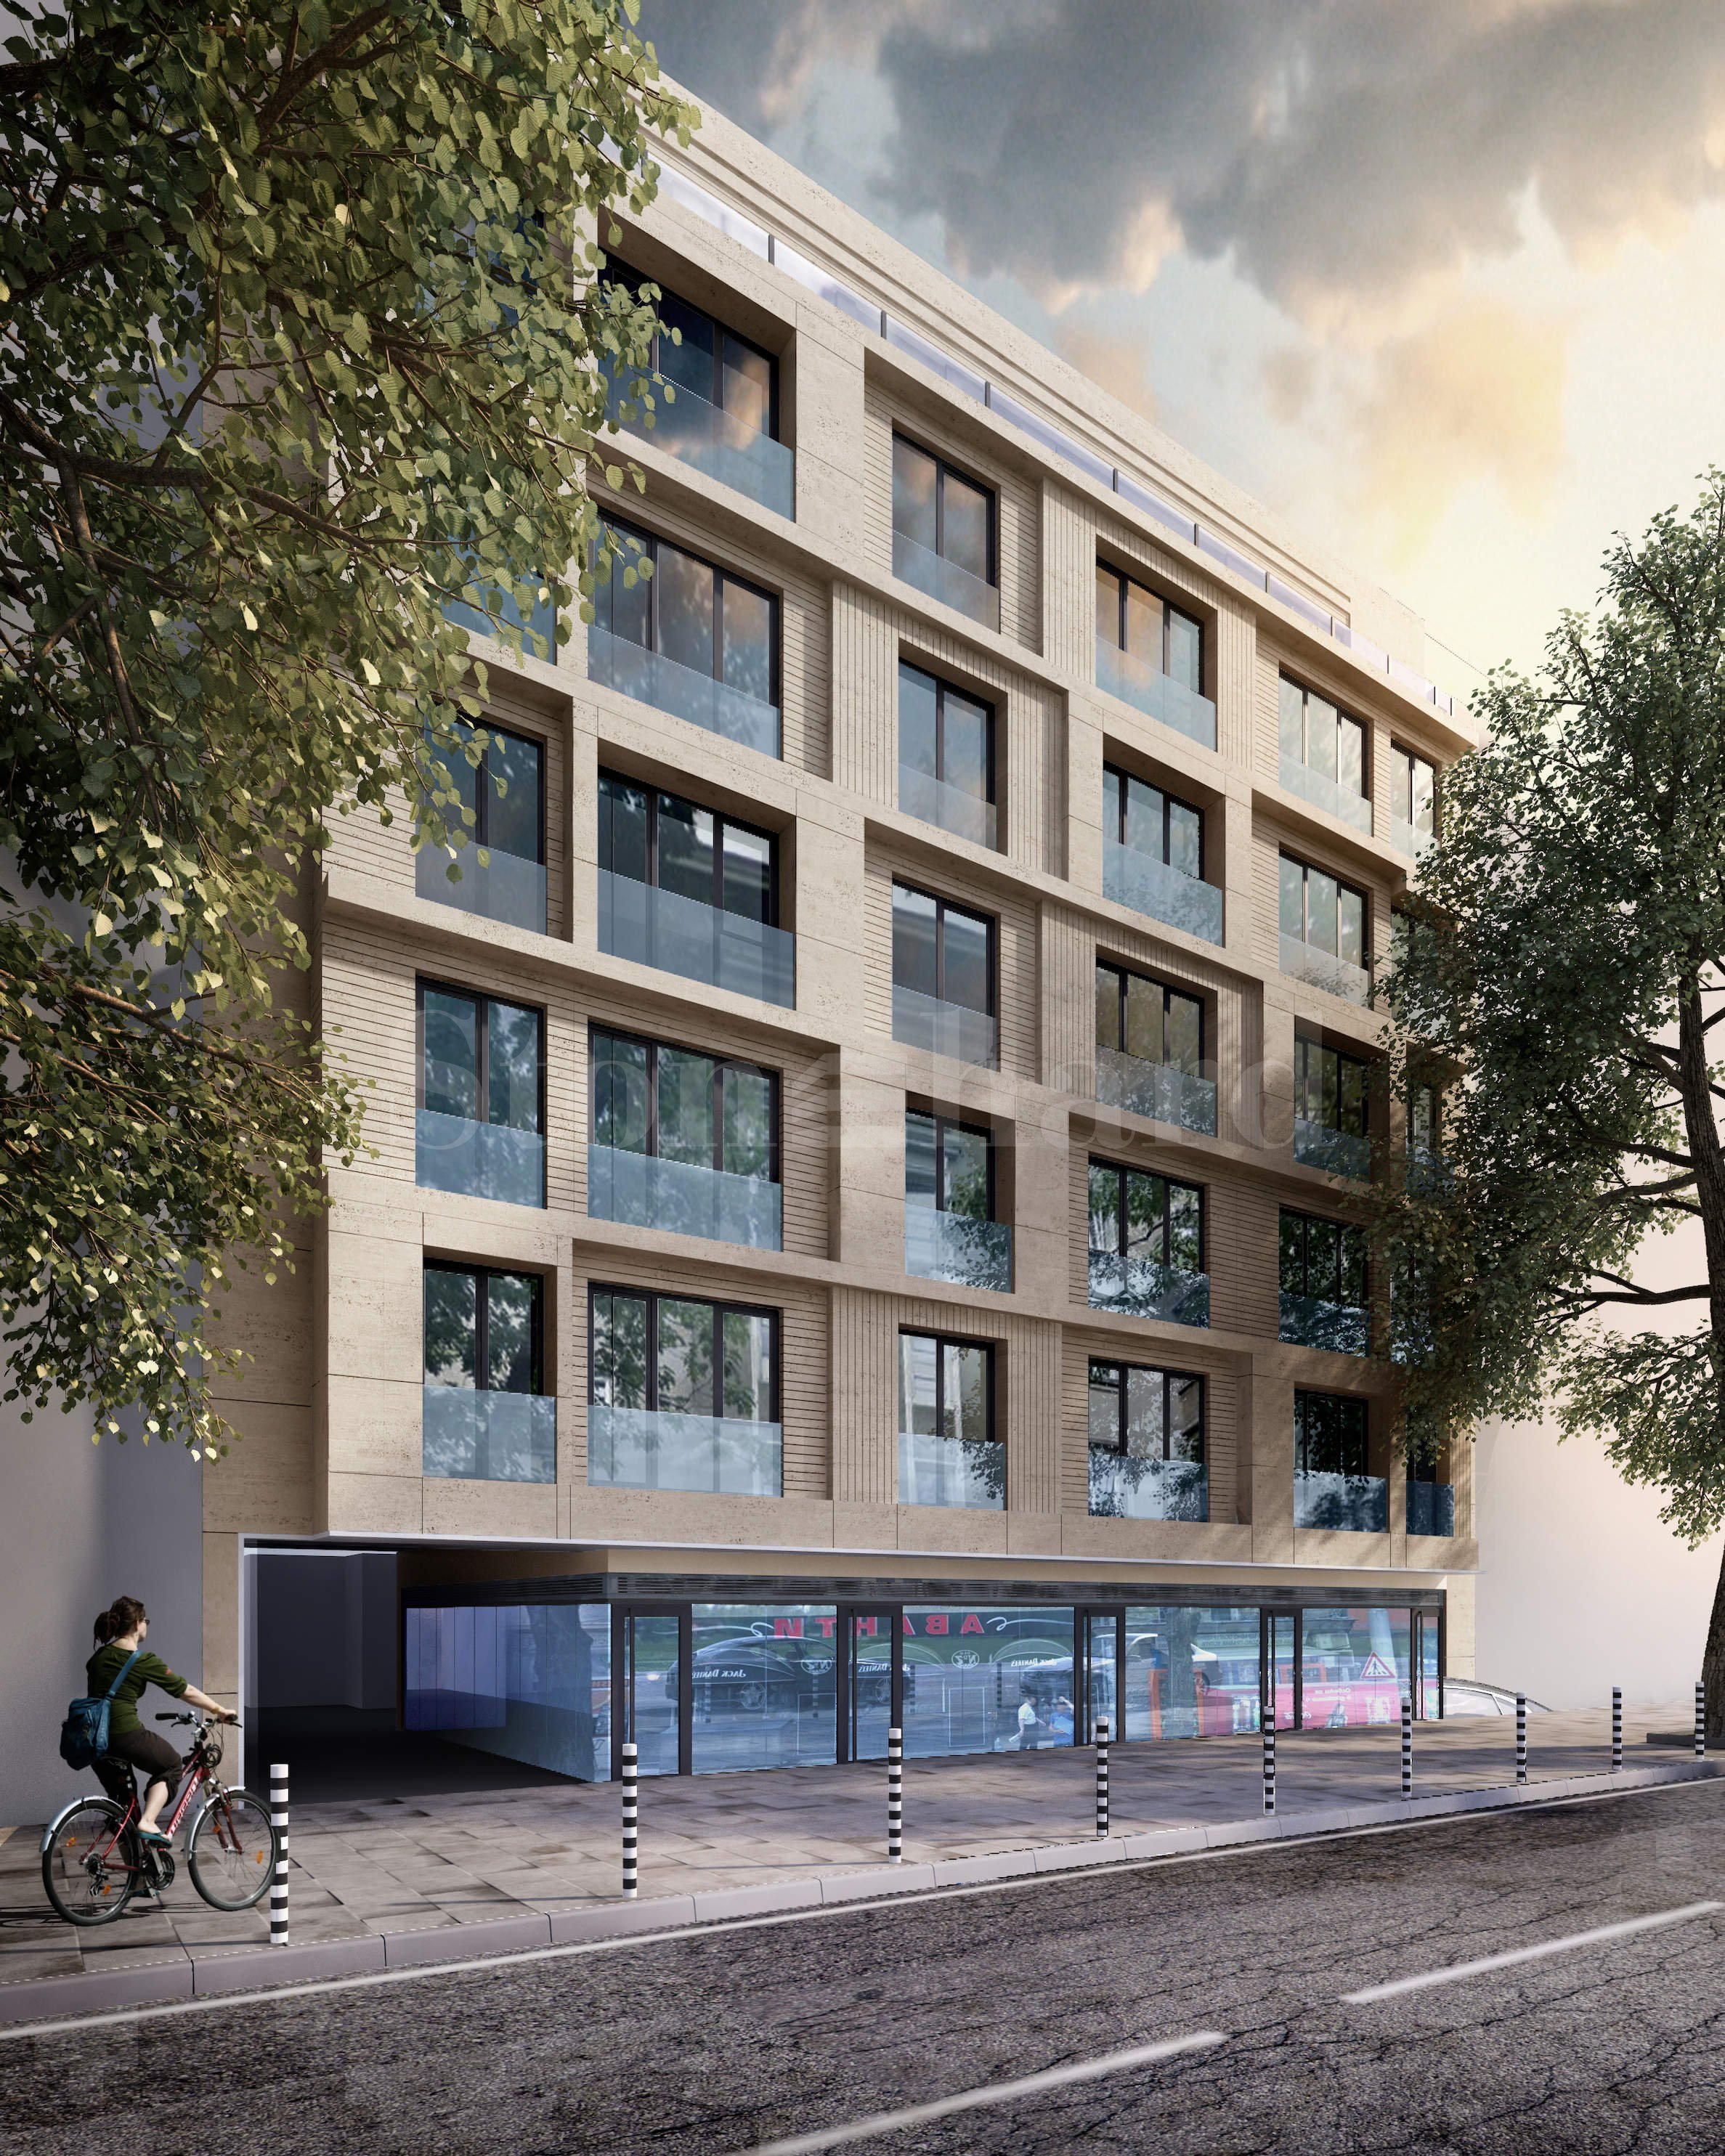 New building in the central part of Sofia, close to Opalchenska metro station and Mall of Sofia1 - Stonehard